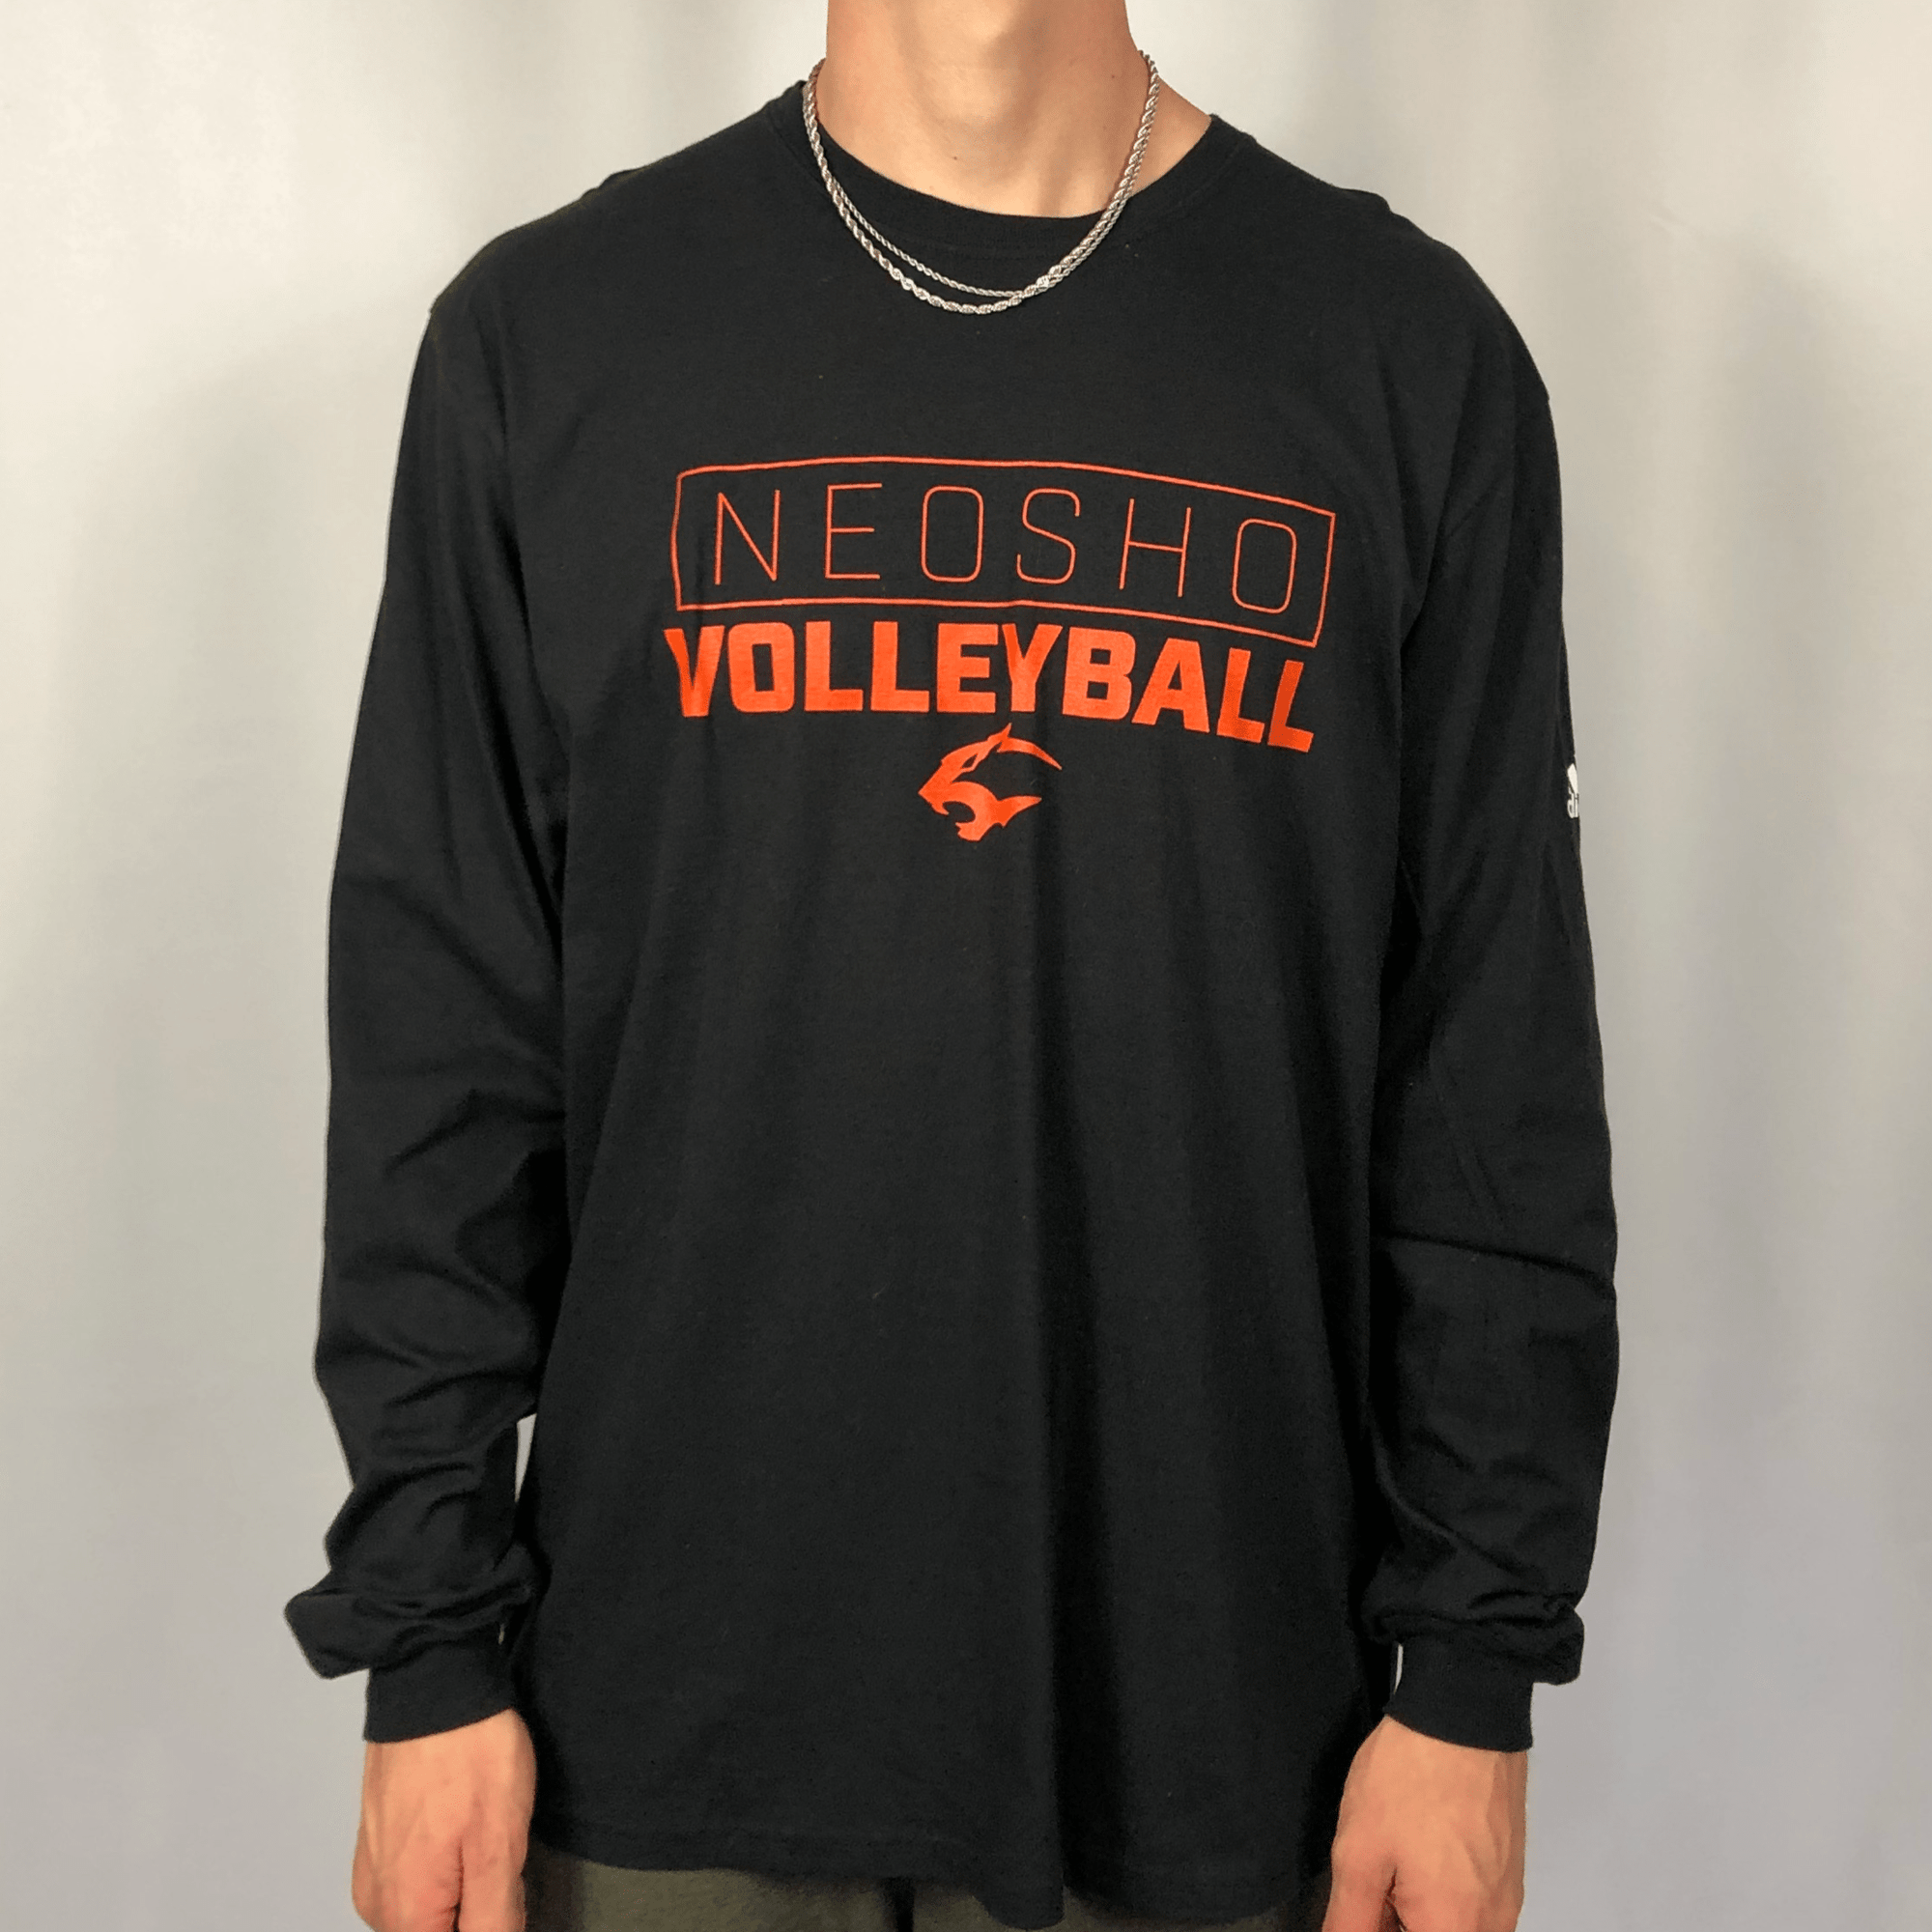 Adidas 'Neosho Volleyball' Long Sleeve Tee - XL - Vintique Clothing